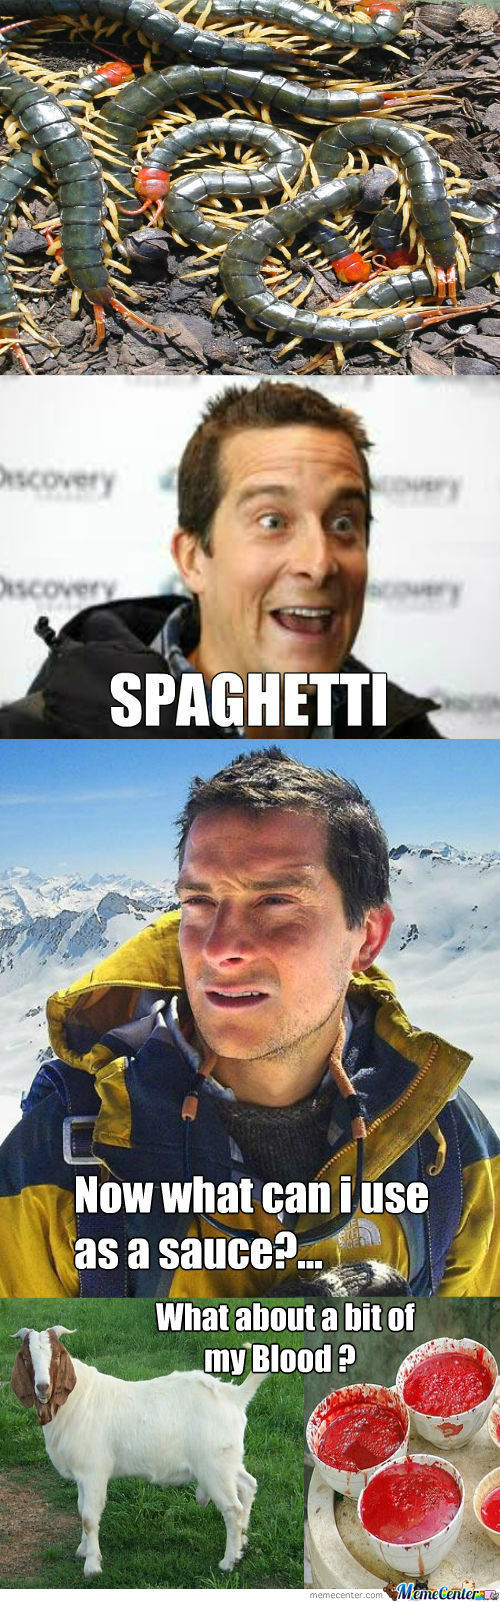 [RMX] [RMX] Bear Grylls Overview Of Food